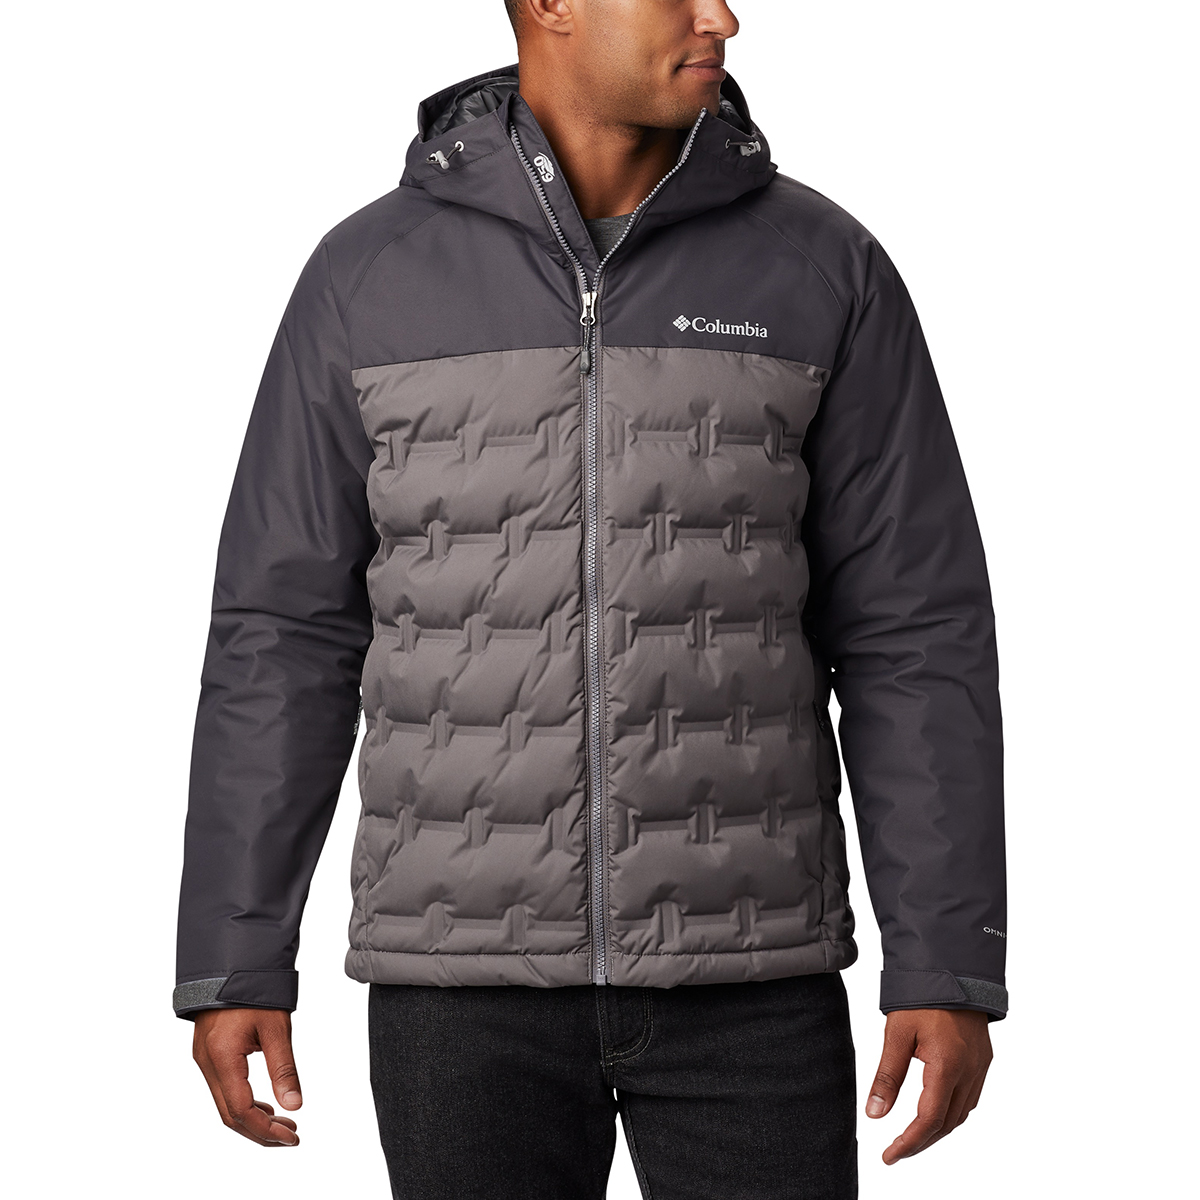 Columbia Men's Grand Trek Down Jacket - Black, S